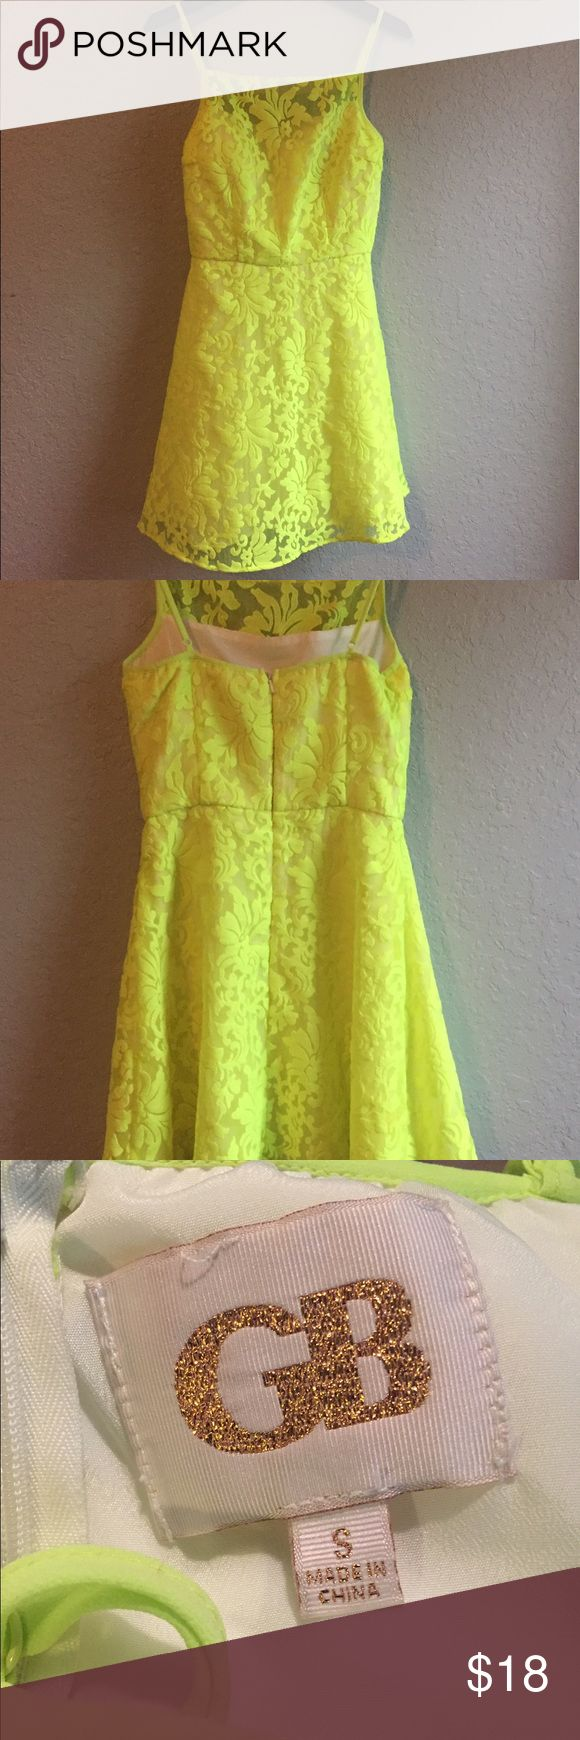 GB Neon Yellow Dress GB Neon Yellow Dress GB Dresses